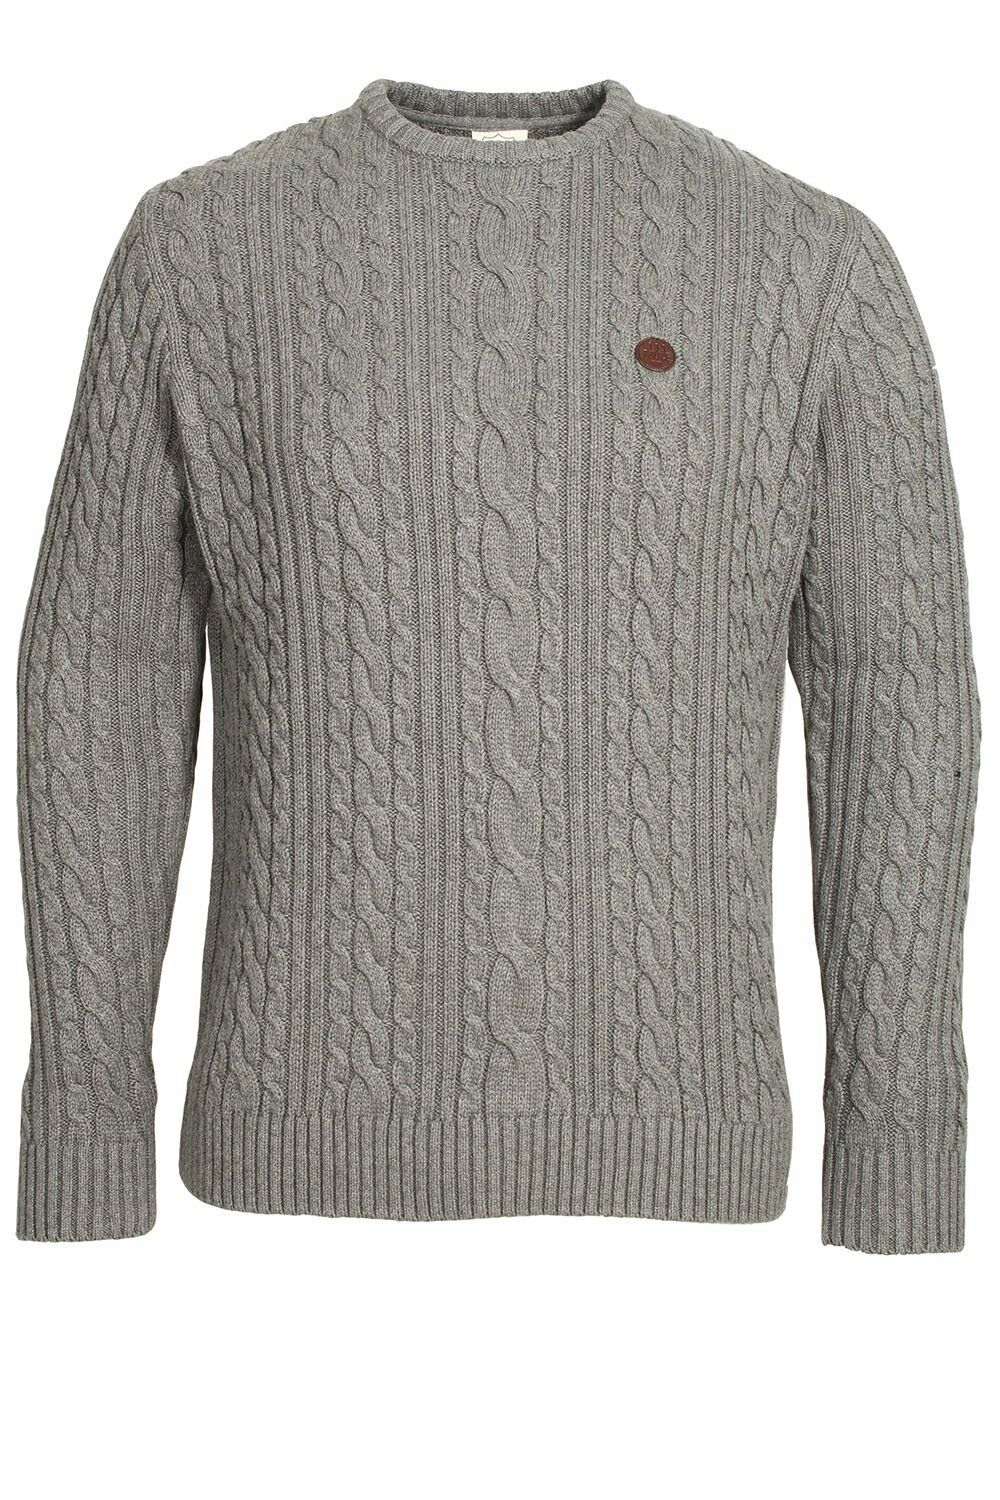 883 POLICE Secret Marl Grey Cable Knit Sweater